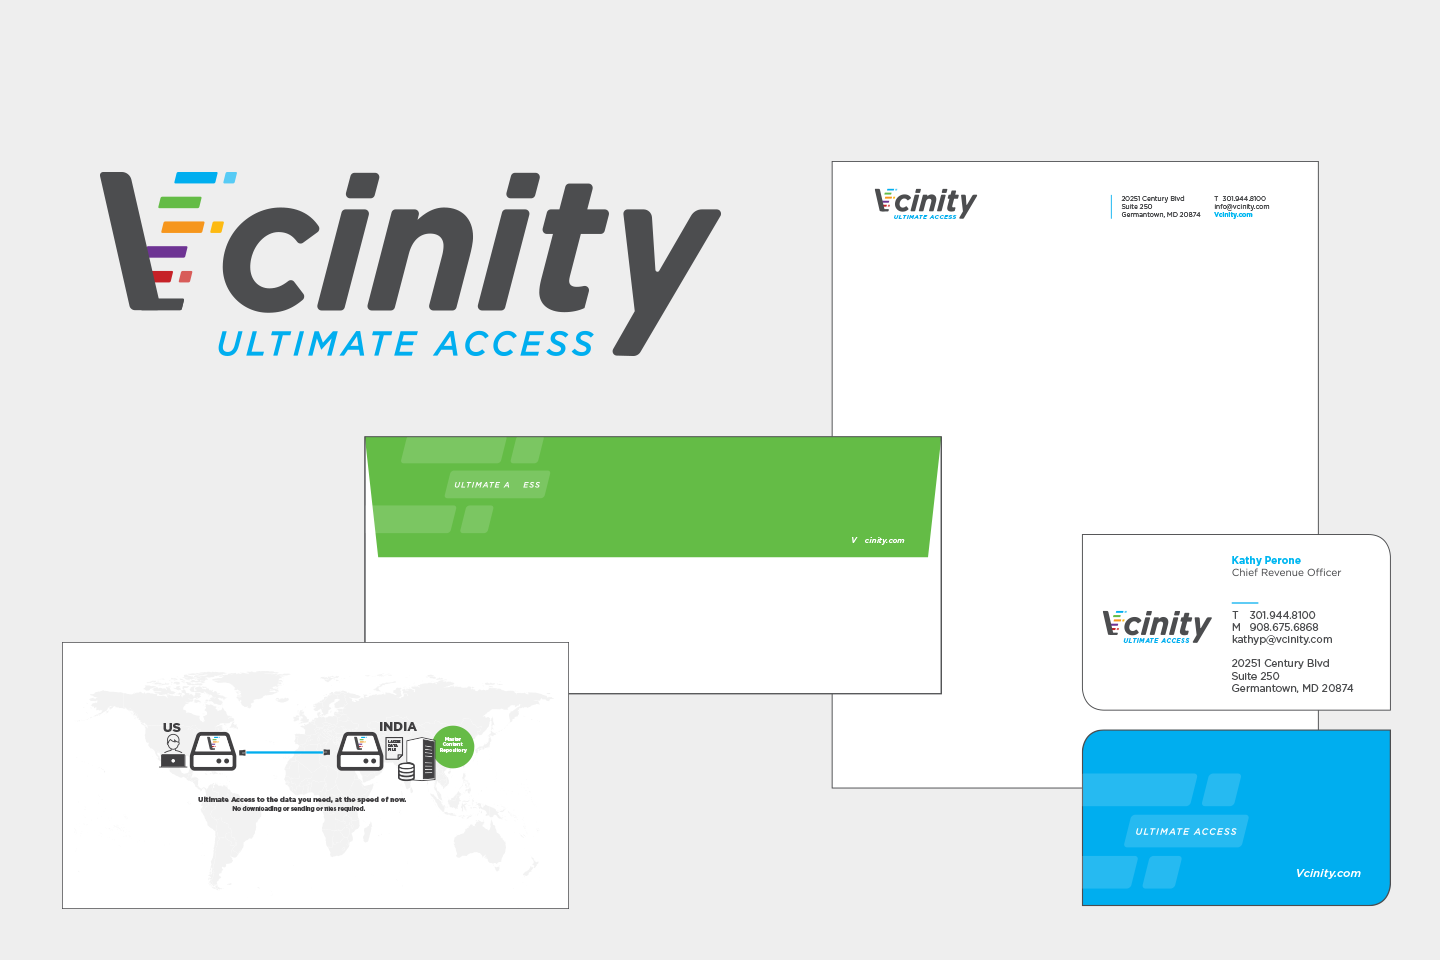 Vcinity_1.png